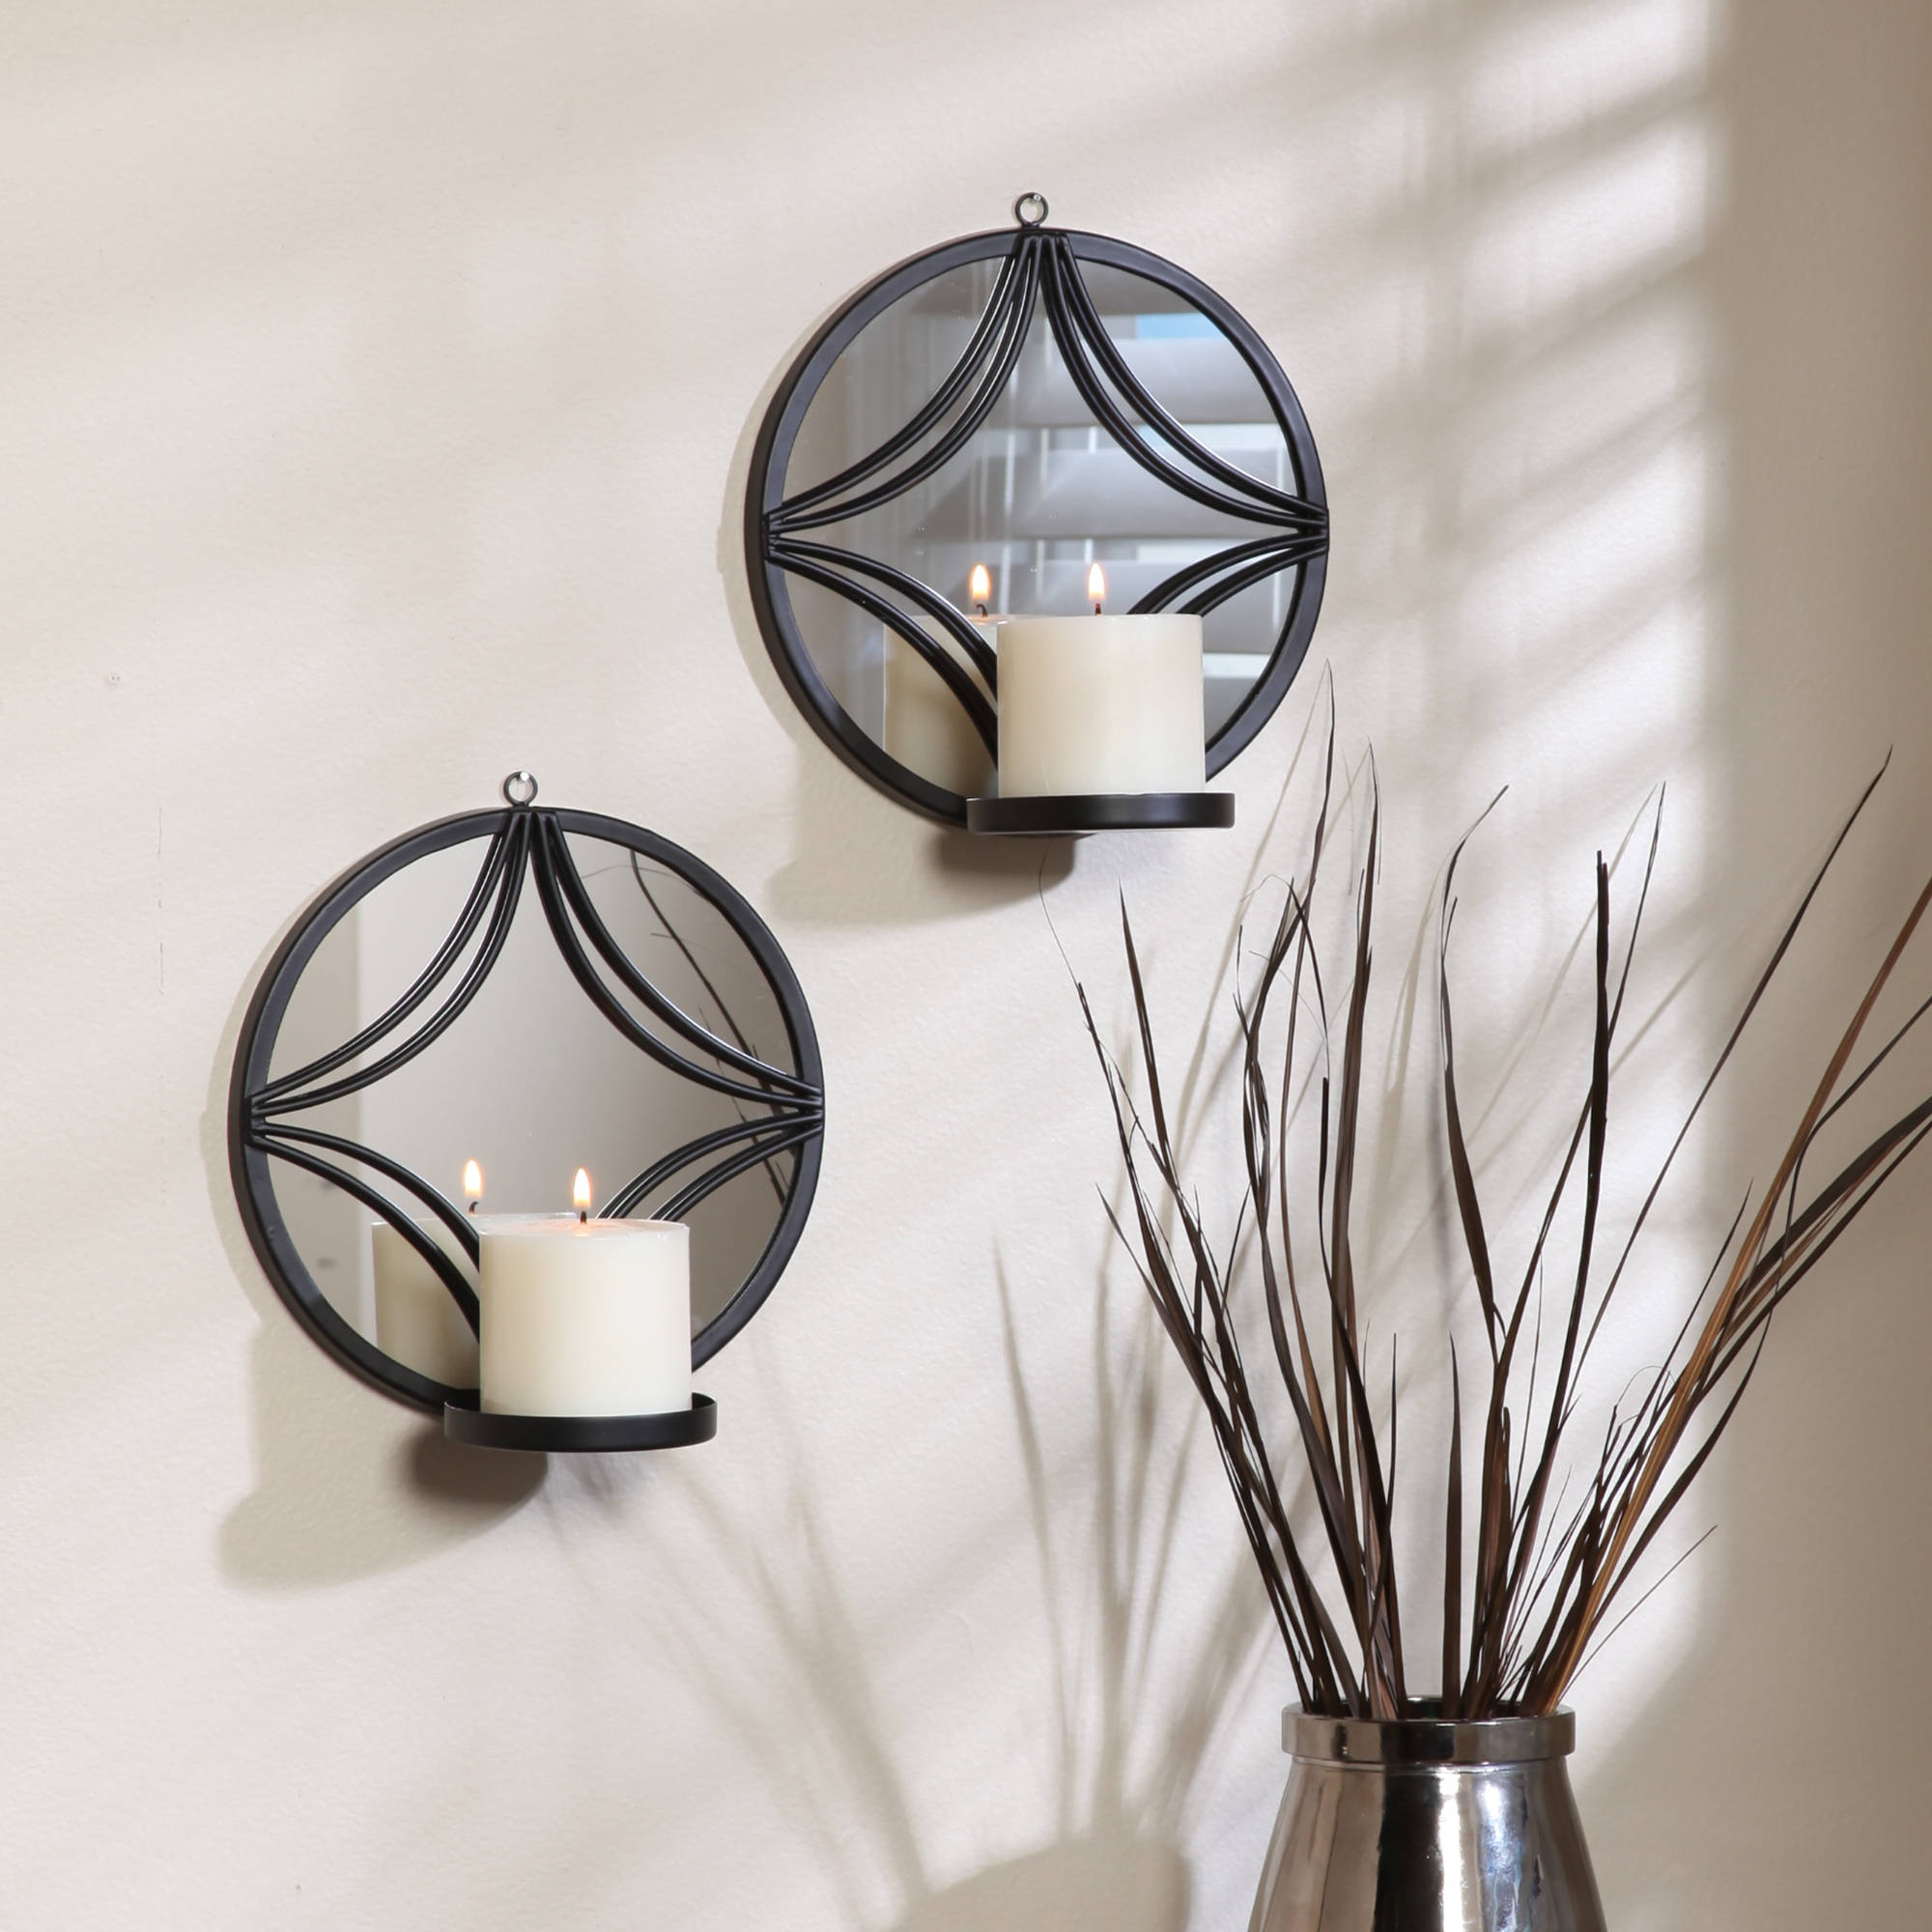 Click here to buy Better Homes and Gardens Geometric Mirror Sconces, Set of 2.